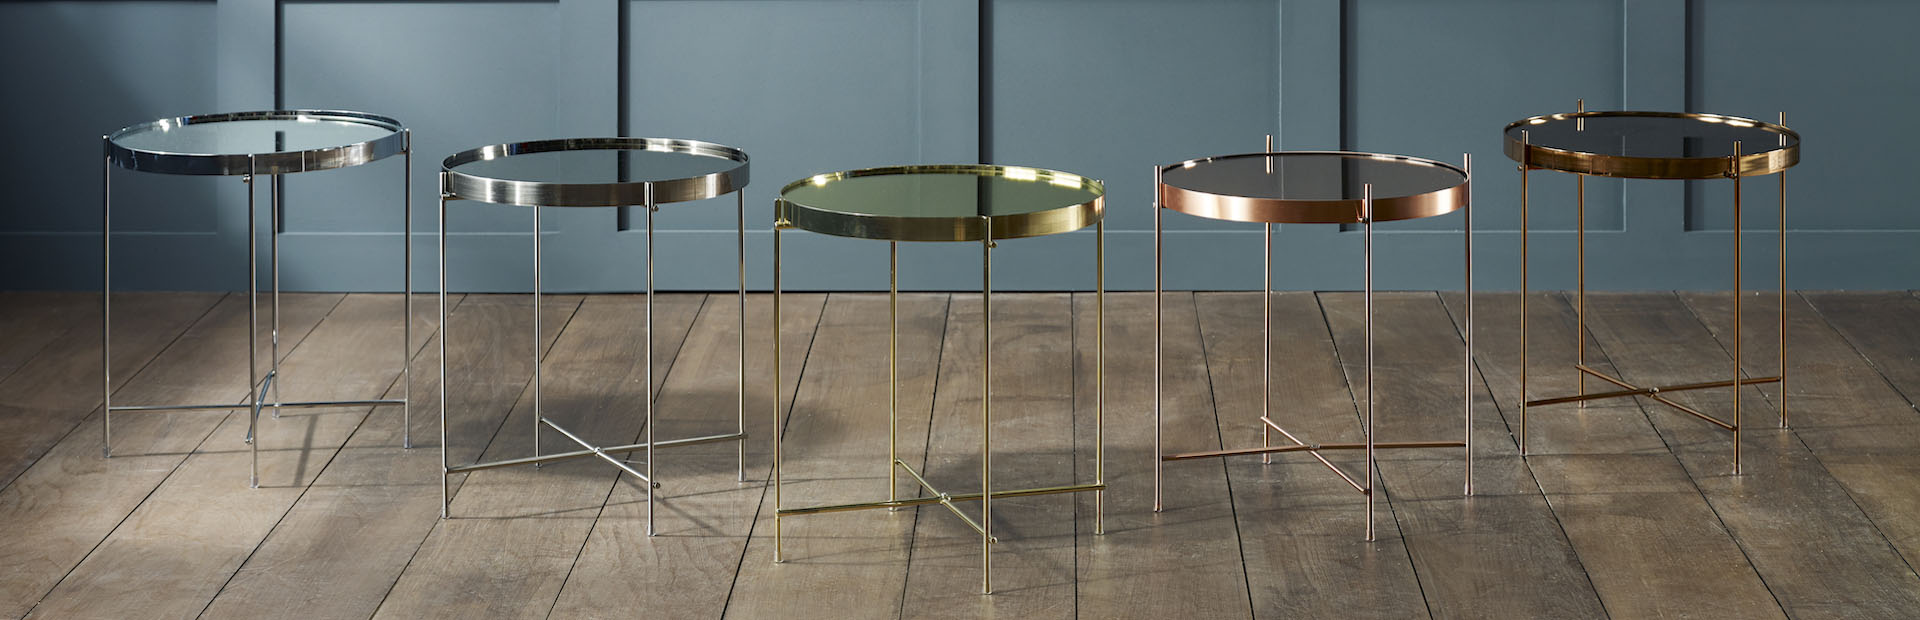 Striking Metallic Tables